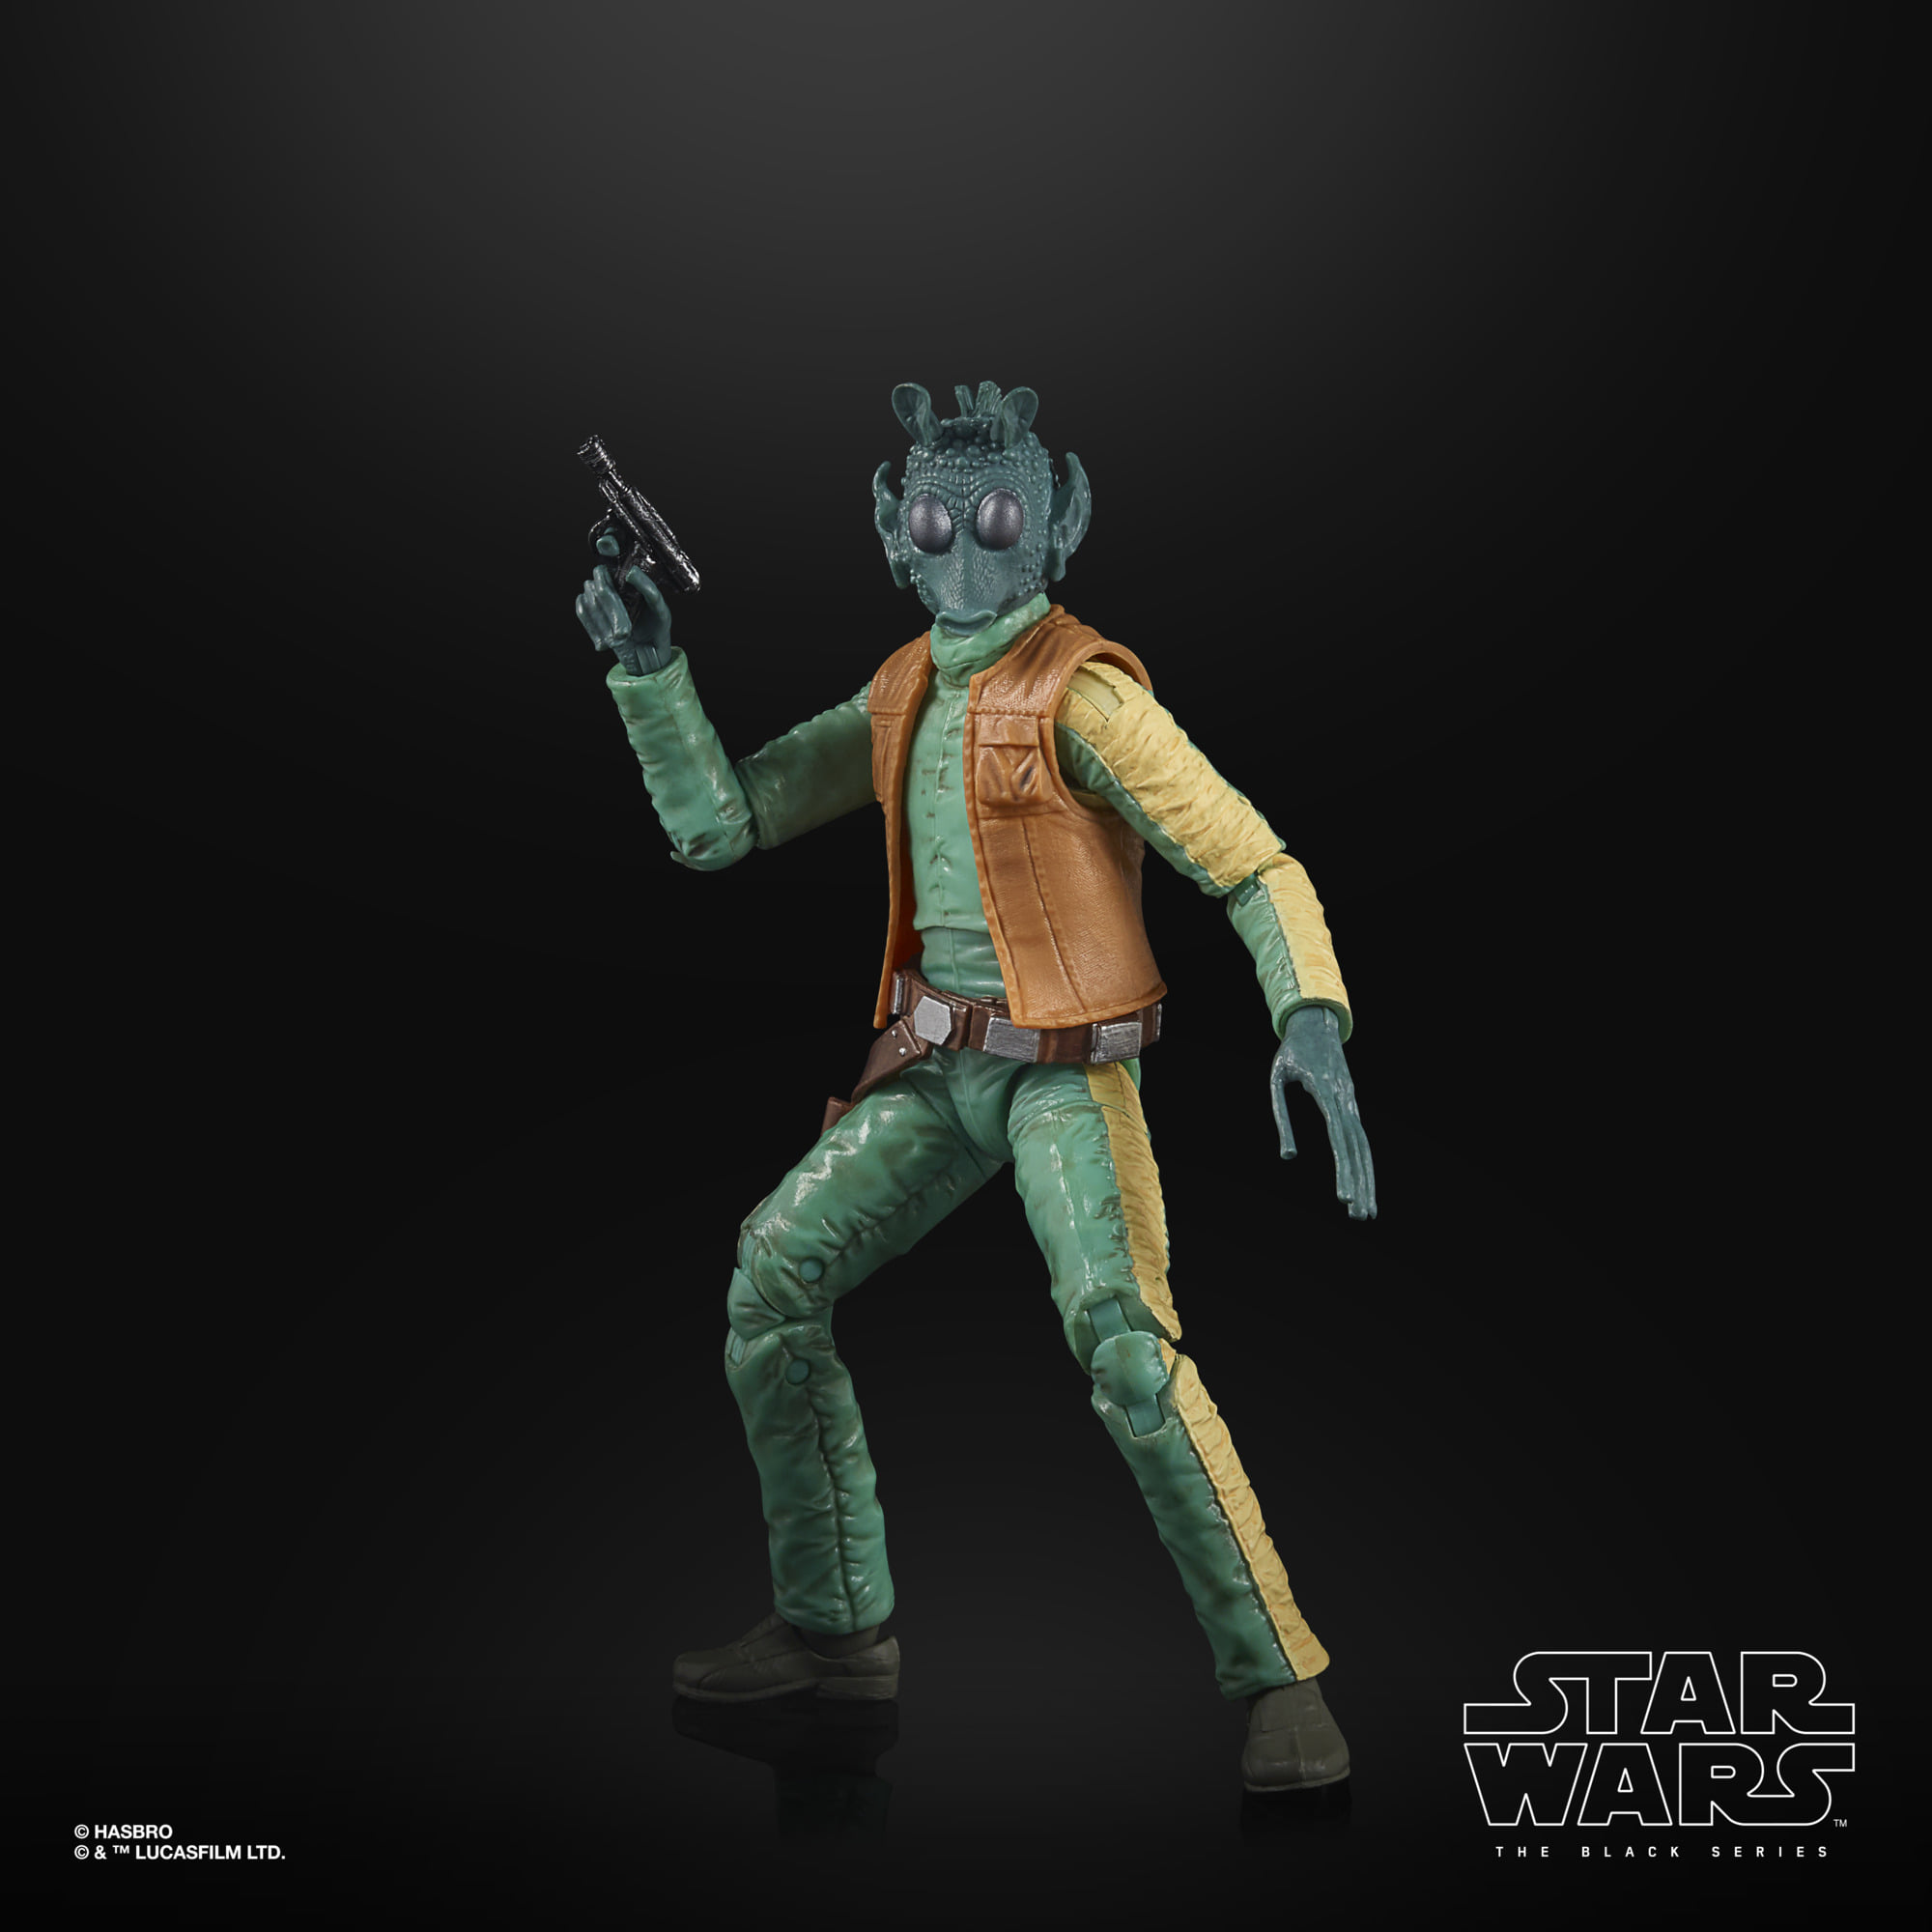 Star Wars The Black Series THE POWER OF THE FORCE - Greedo